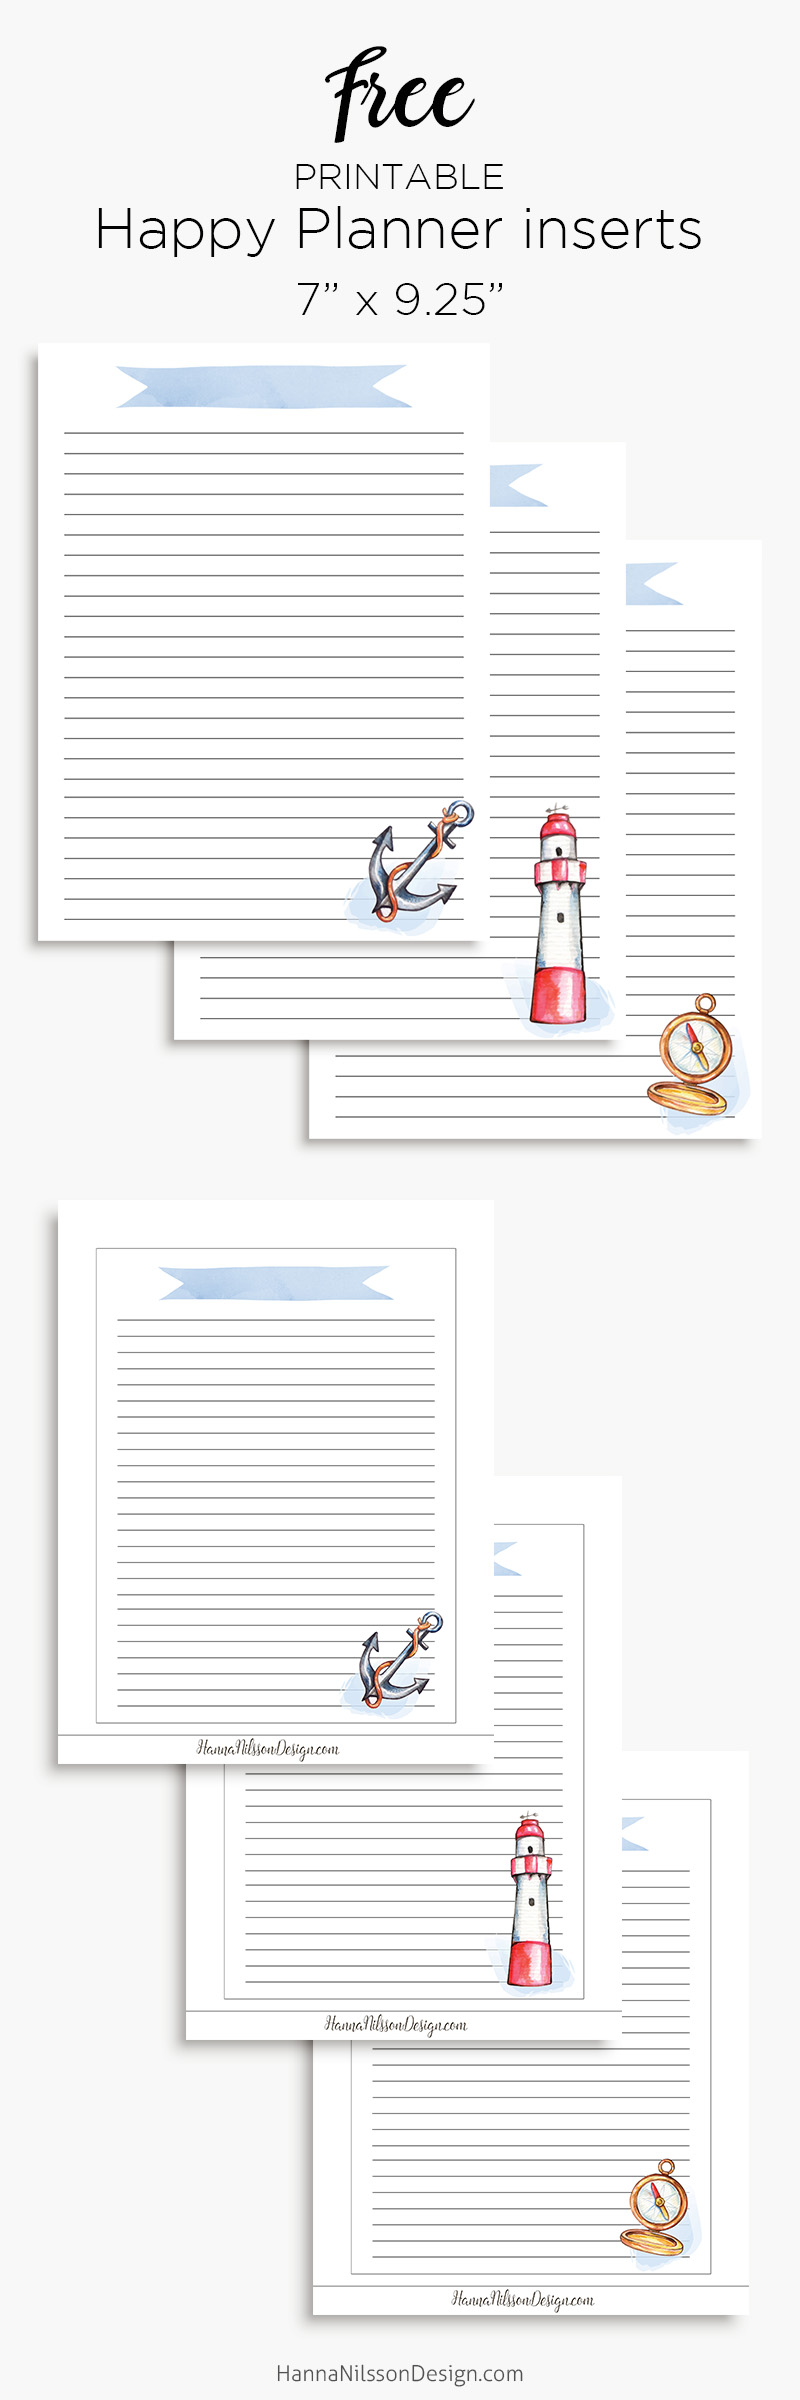 graphic about Happy Planner Printable identified as Nautical planner increase A5 Joyful planner printable lists